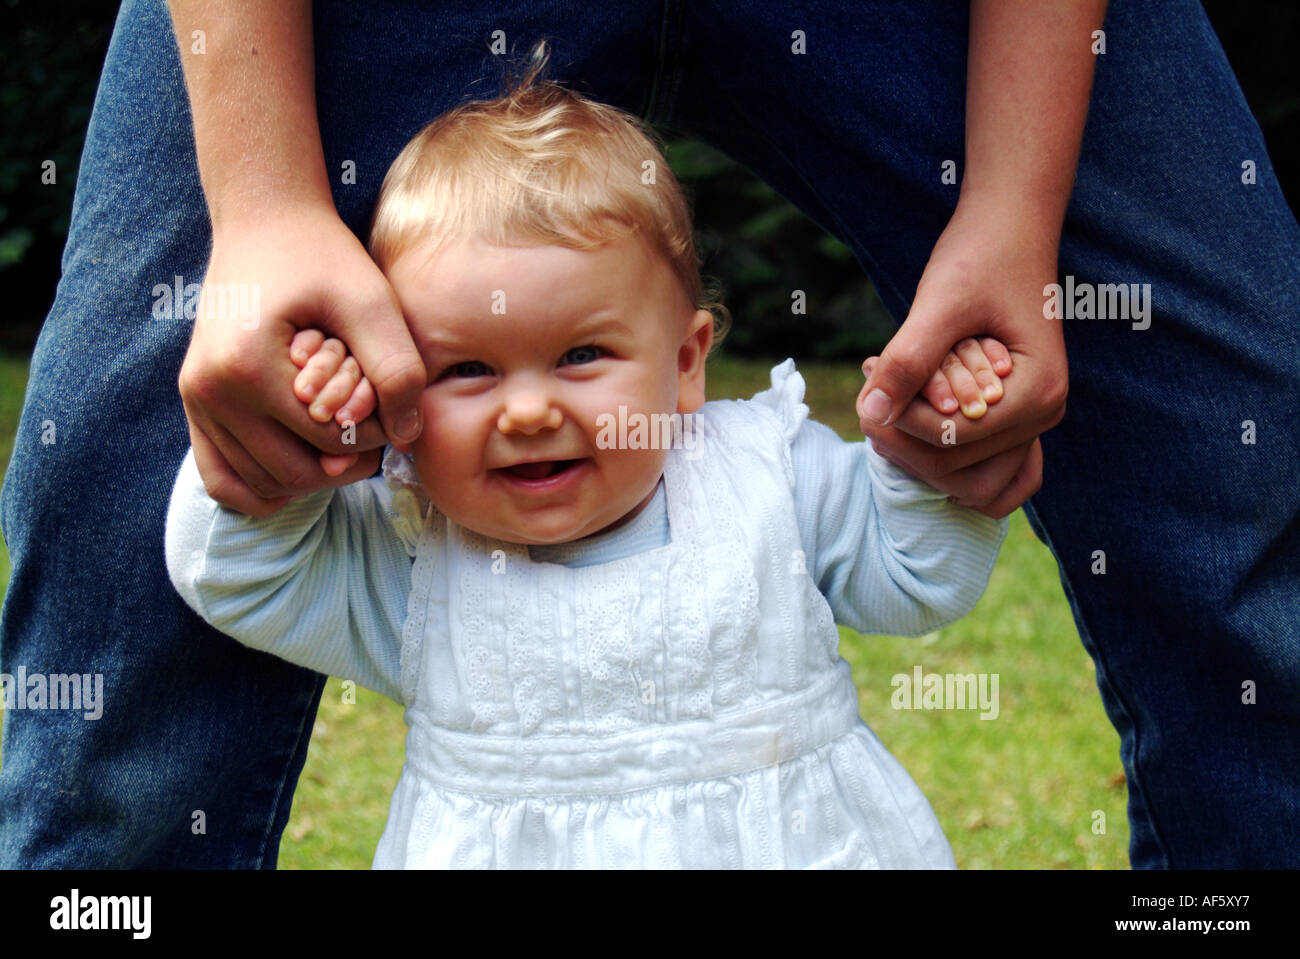 First Steps - Stock Image